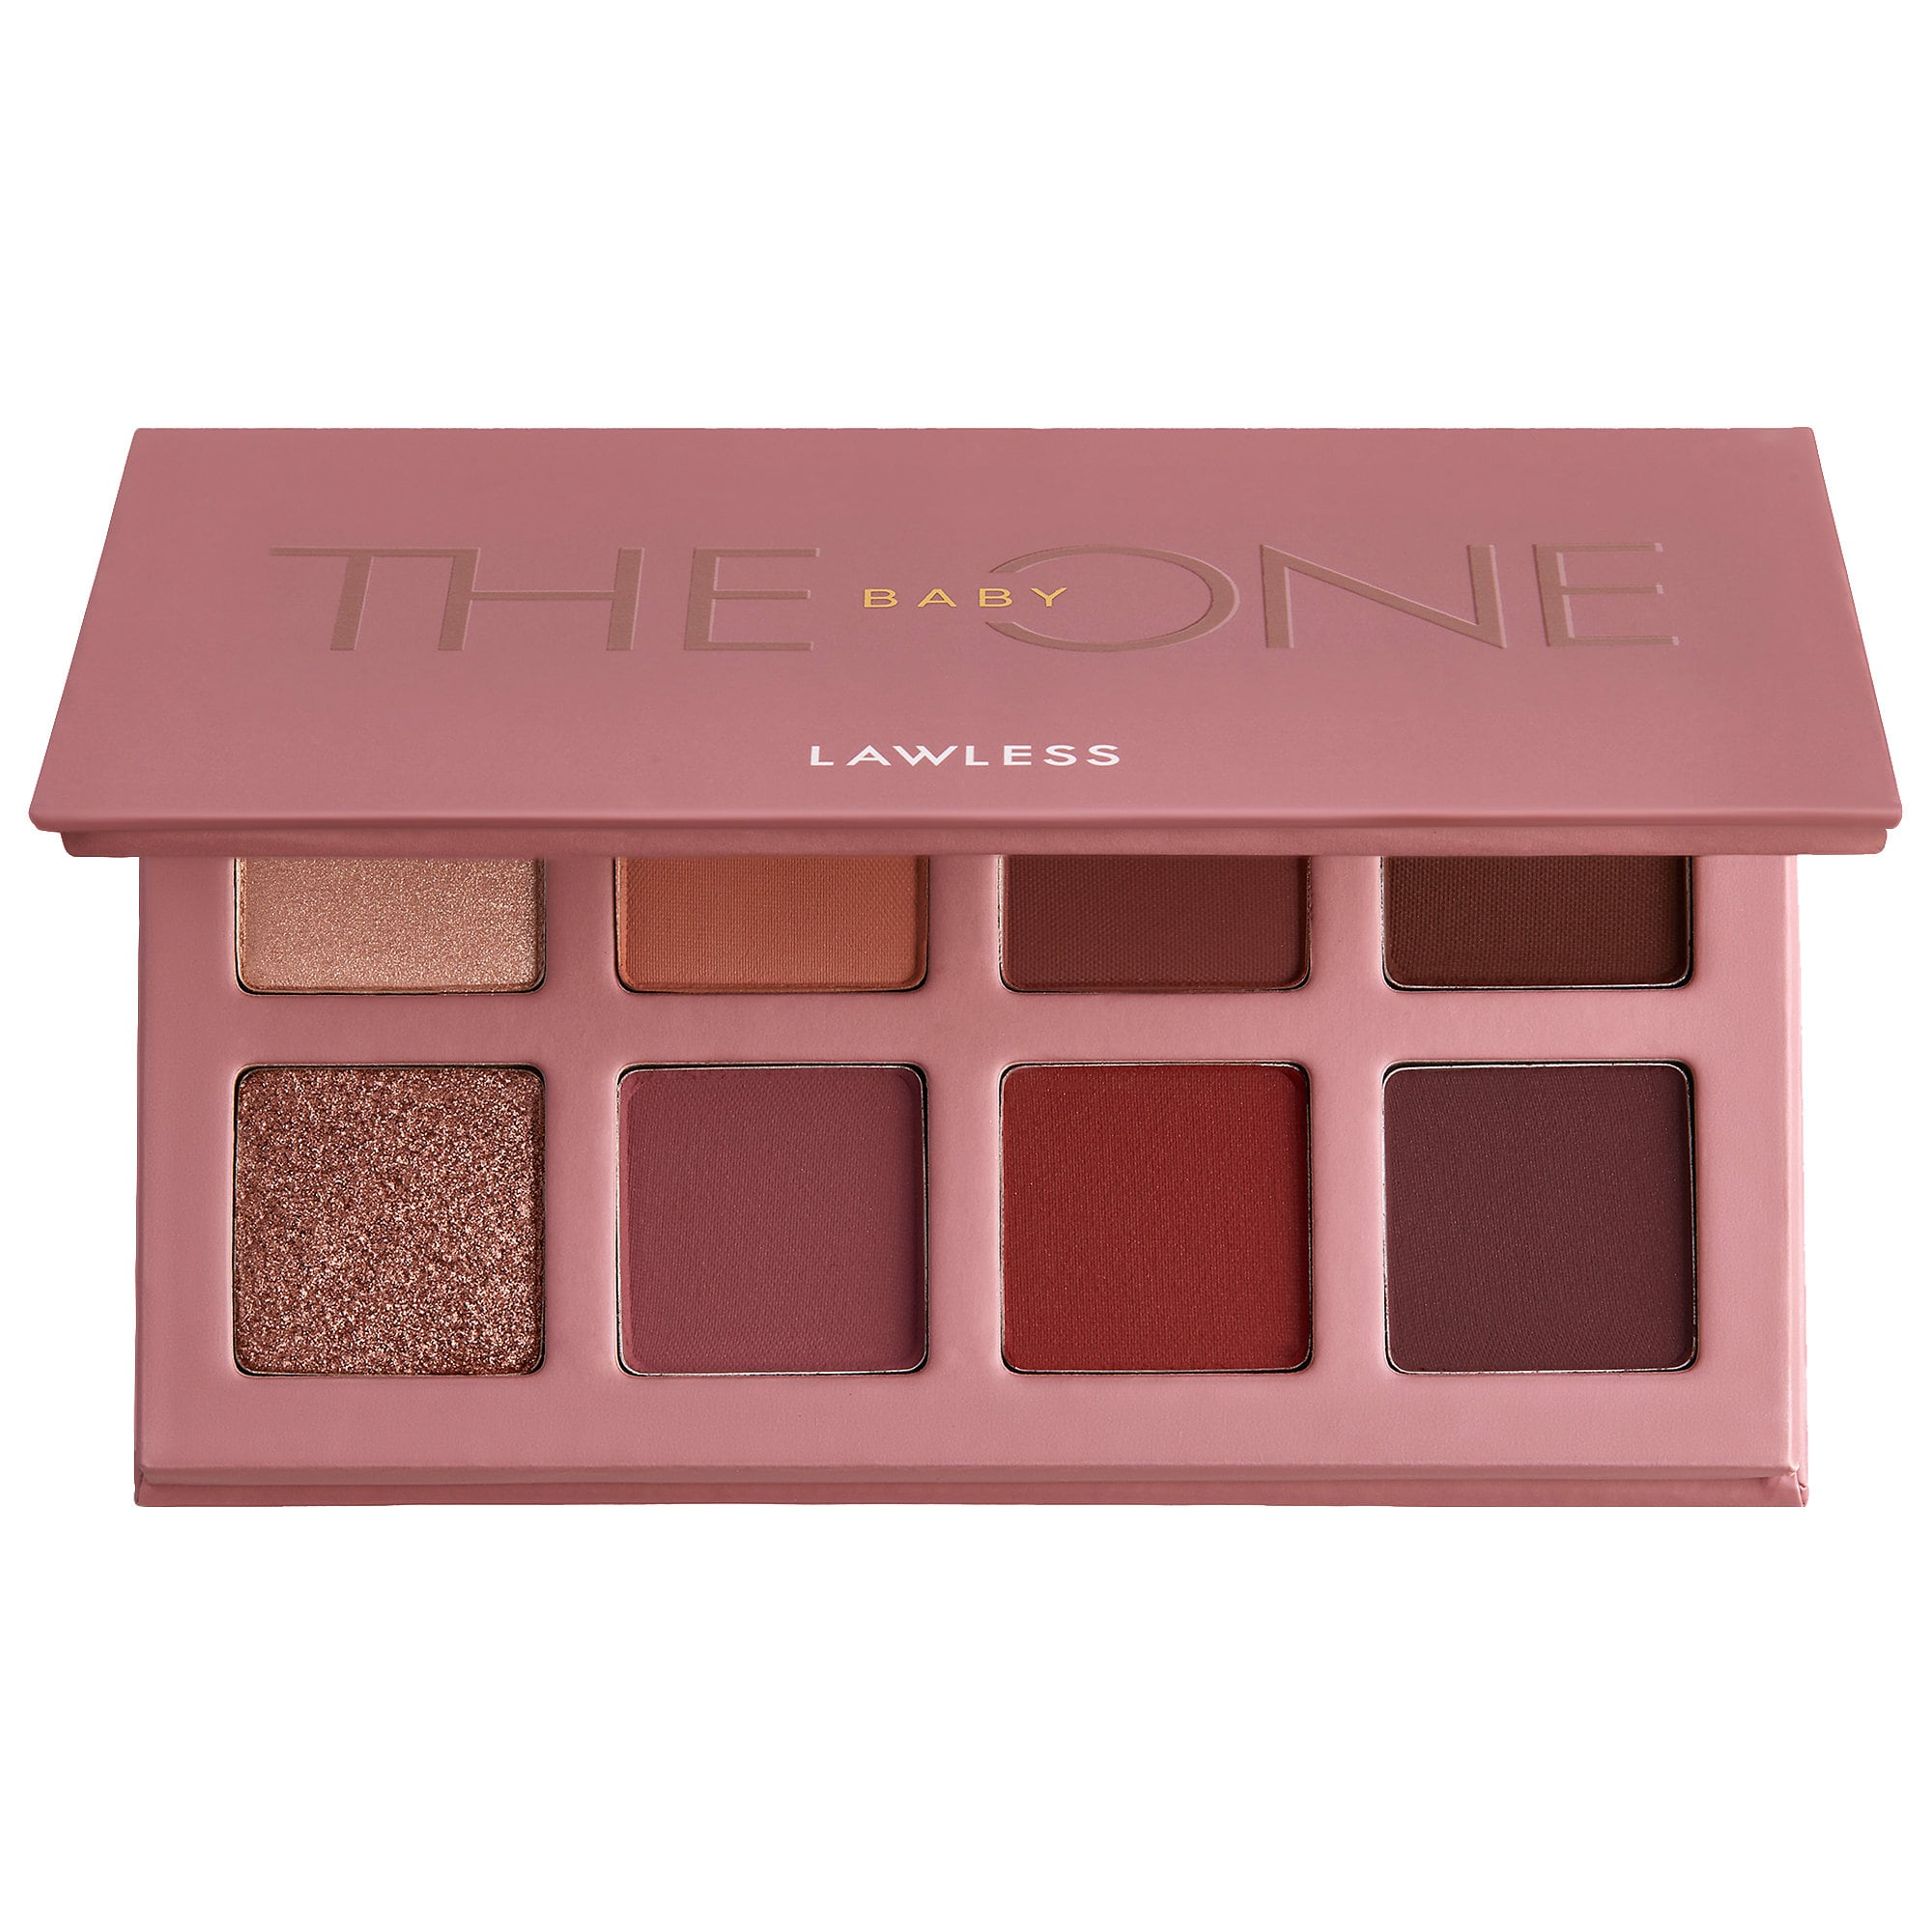 LAWLESS - The Baby One Mini Eyeshadow Palette